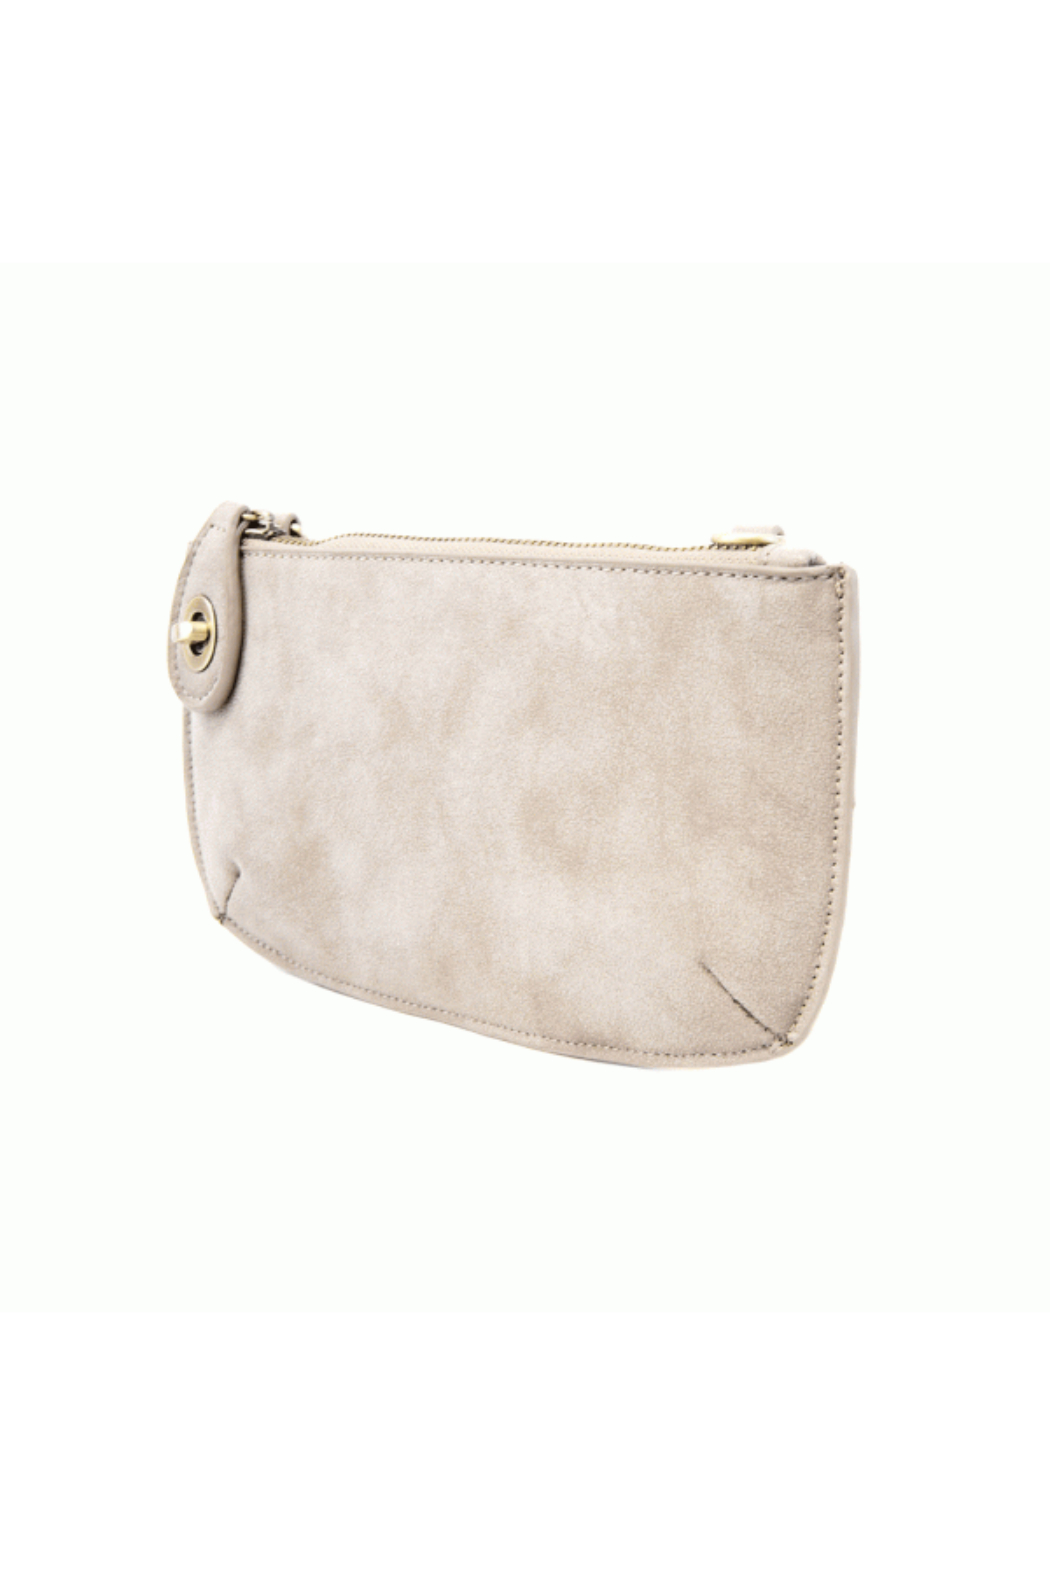 Joy Accessories Sueded Lux Crossbody Wristlet Clutch - Front Full Image